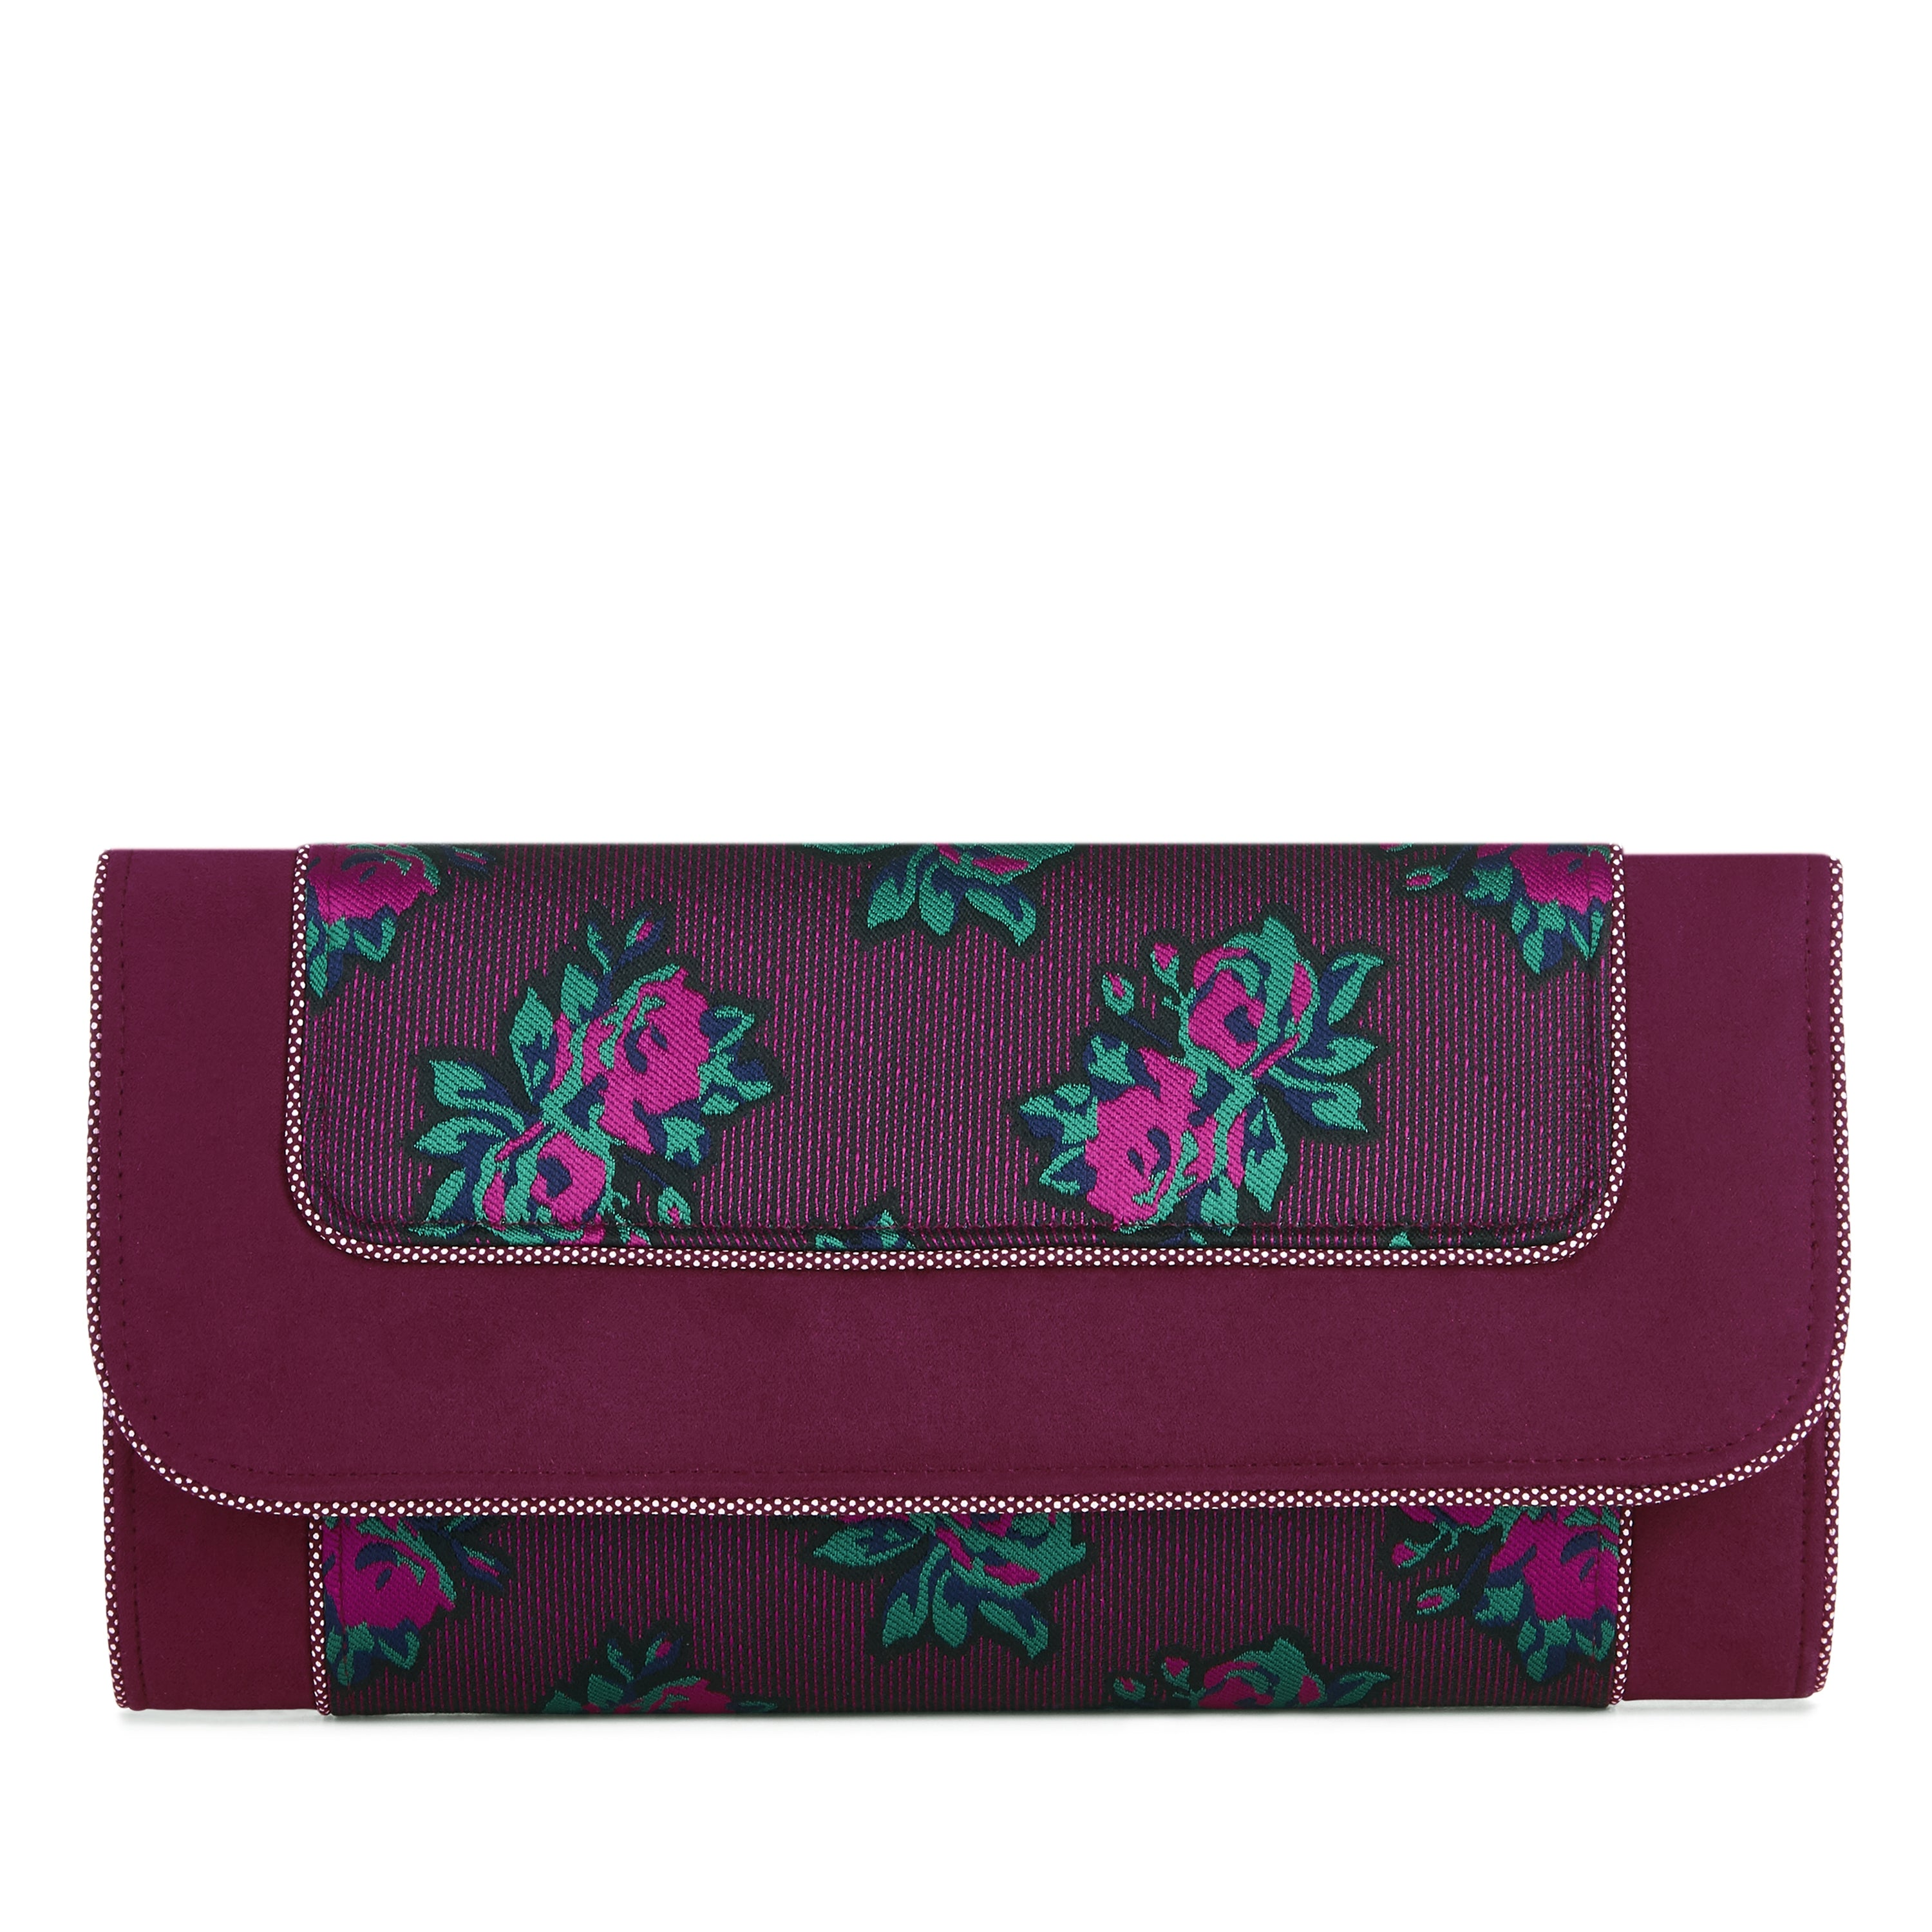 Ruby Shoo Charleston Bag (Plum)